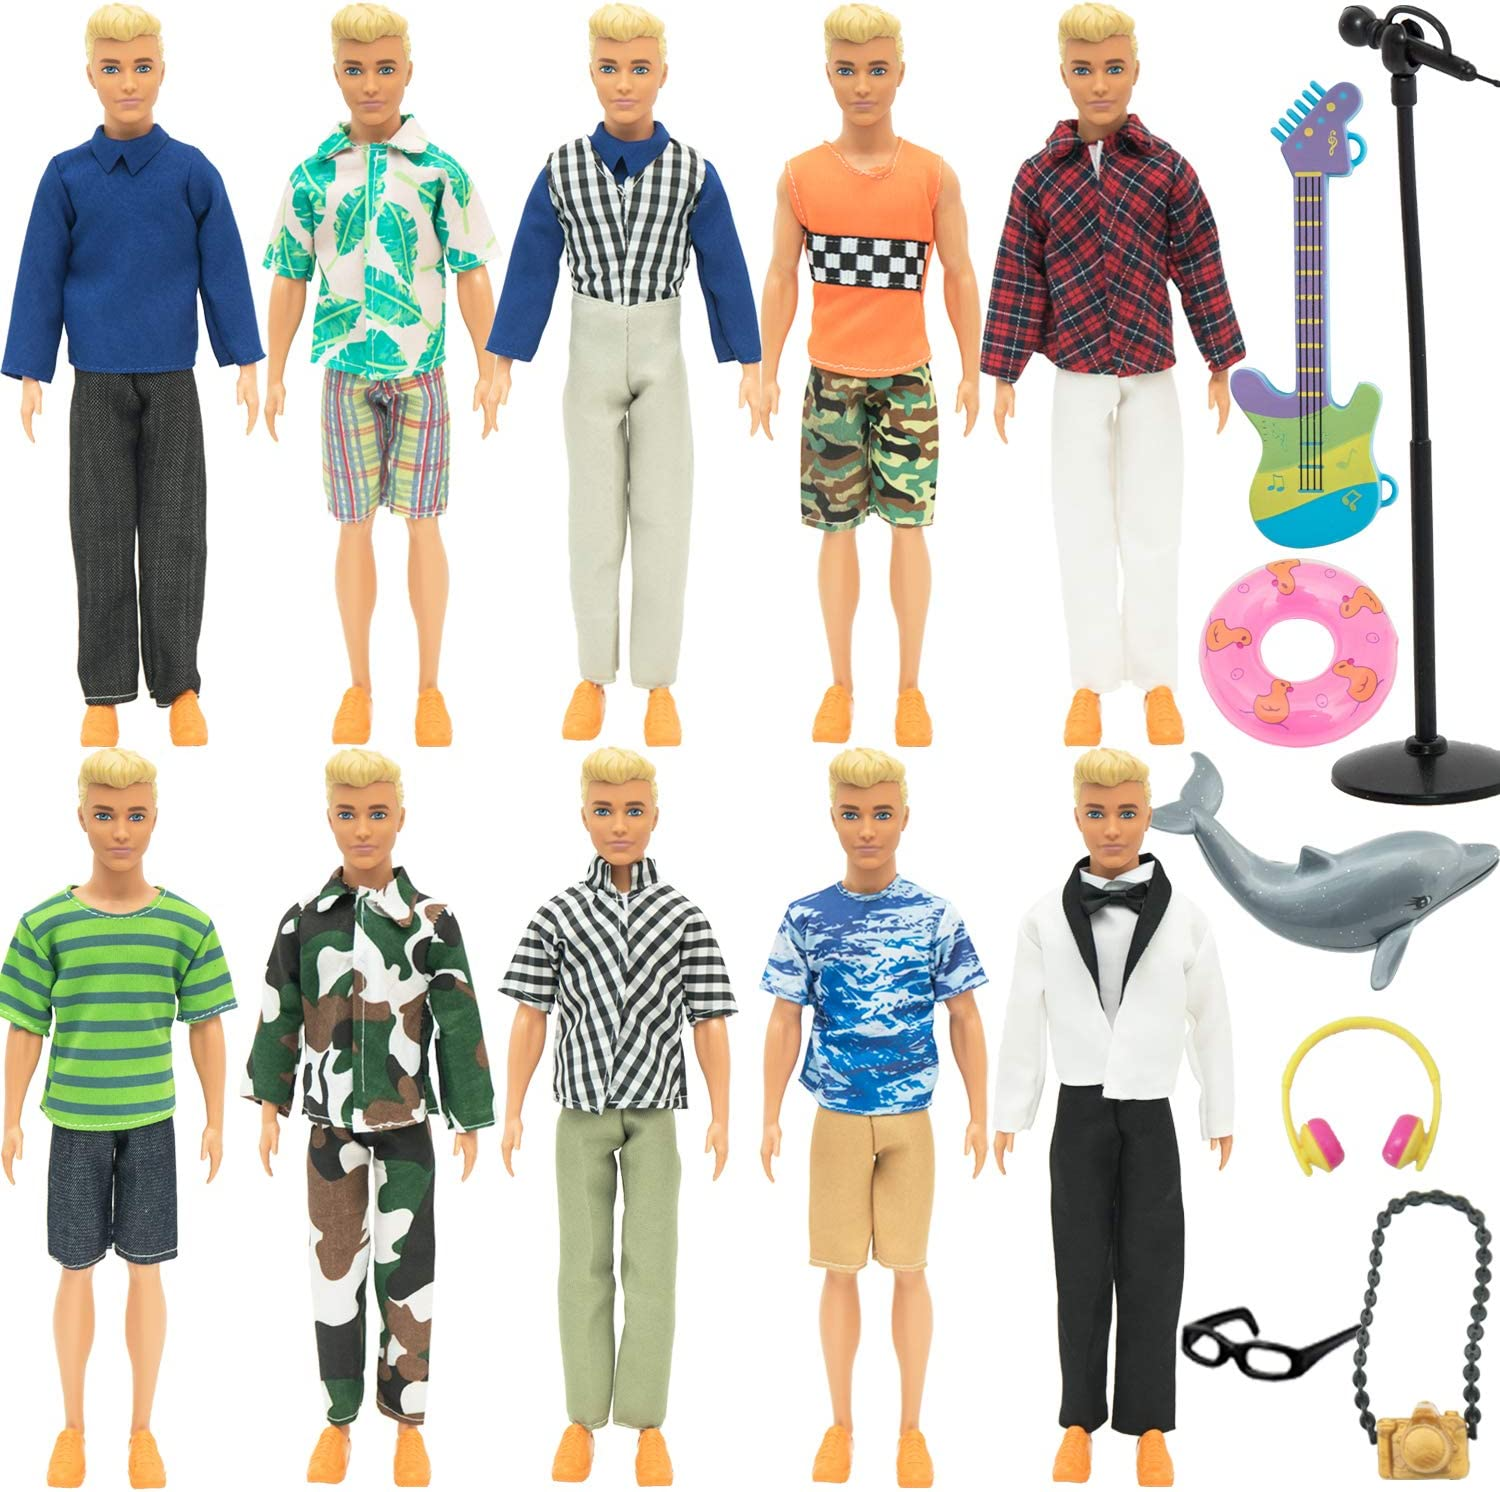 SOTOGO 27 Pieces Doll Clothes Set Include 10 Set Doll Casual/Career Wear Clothes Jacket Pants Outfits with Surfboard and Doll Accessories for Ken Dolls